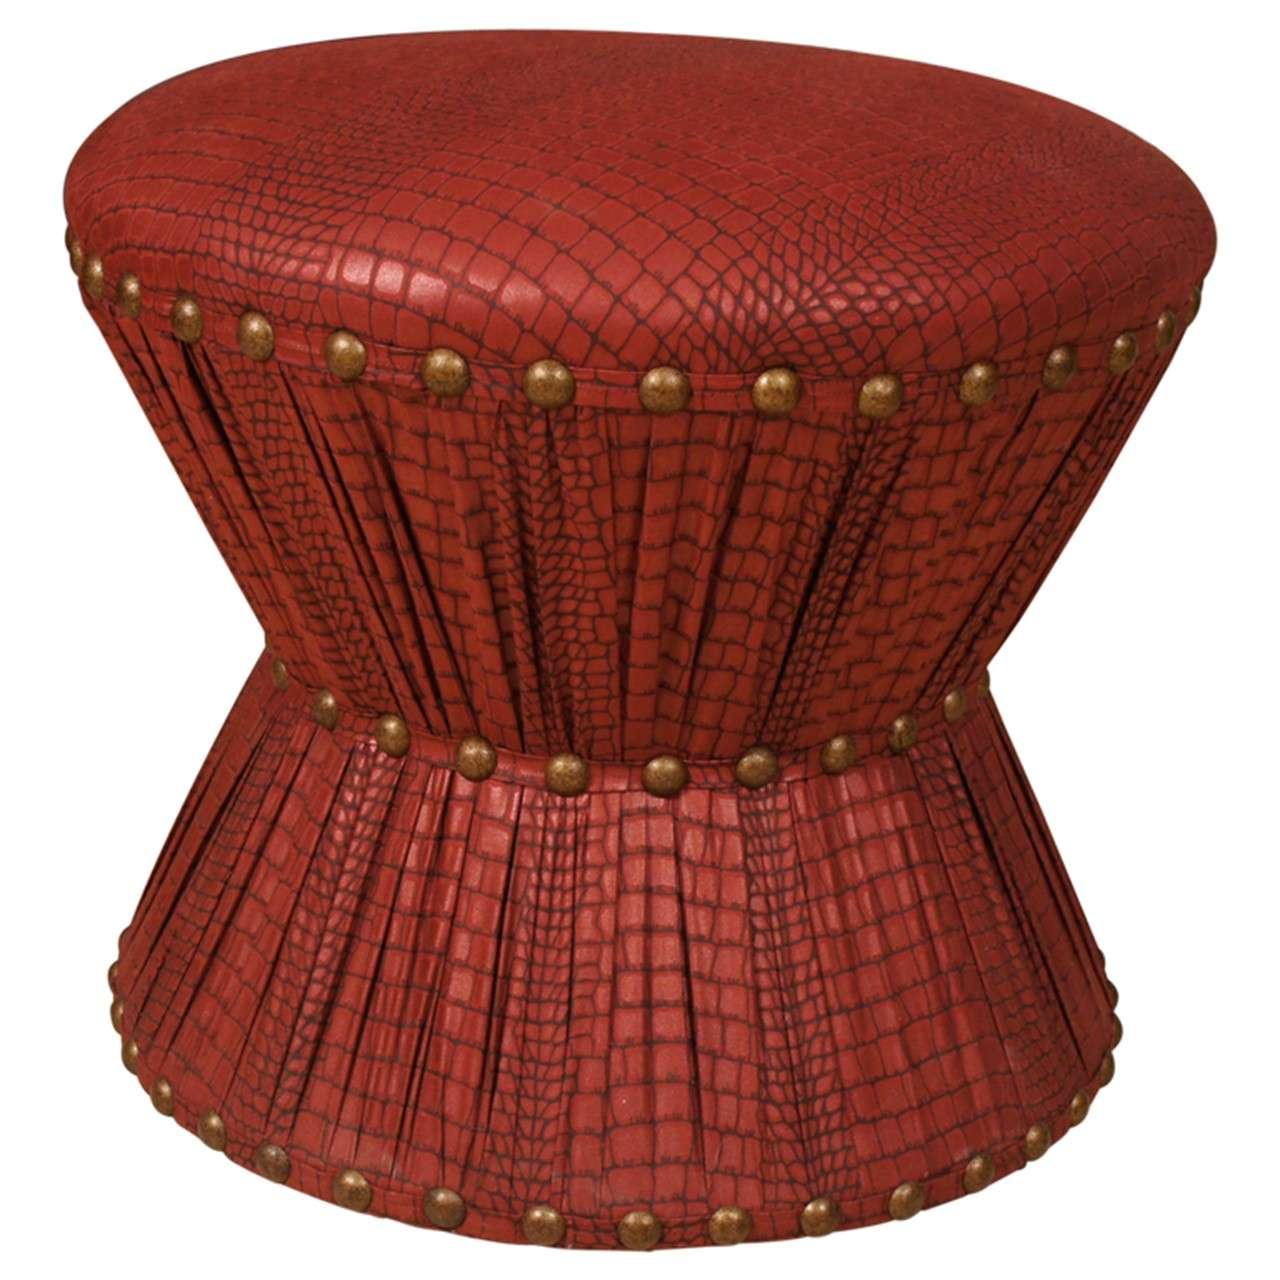 Hourglass Stool with Embossed Leather Printed Cotton Upholstery